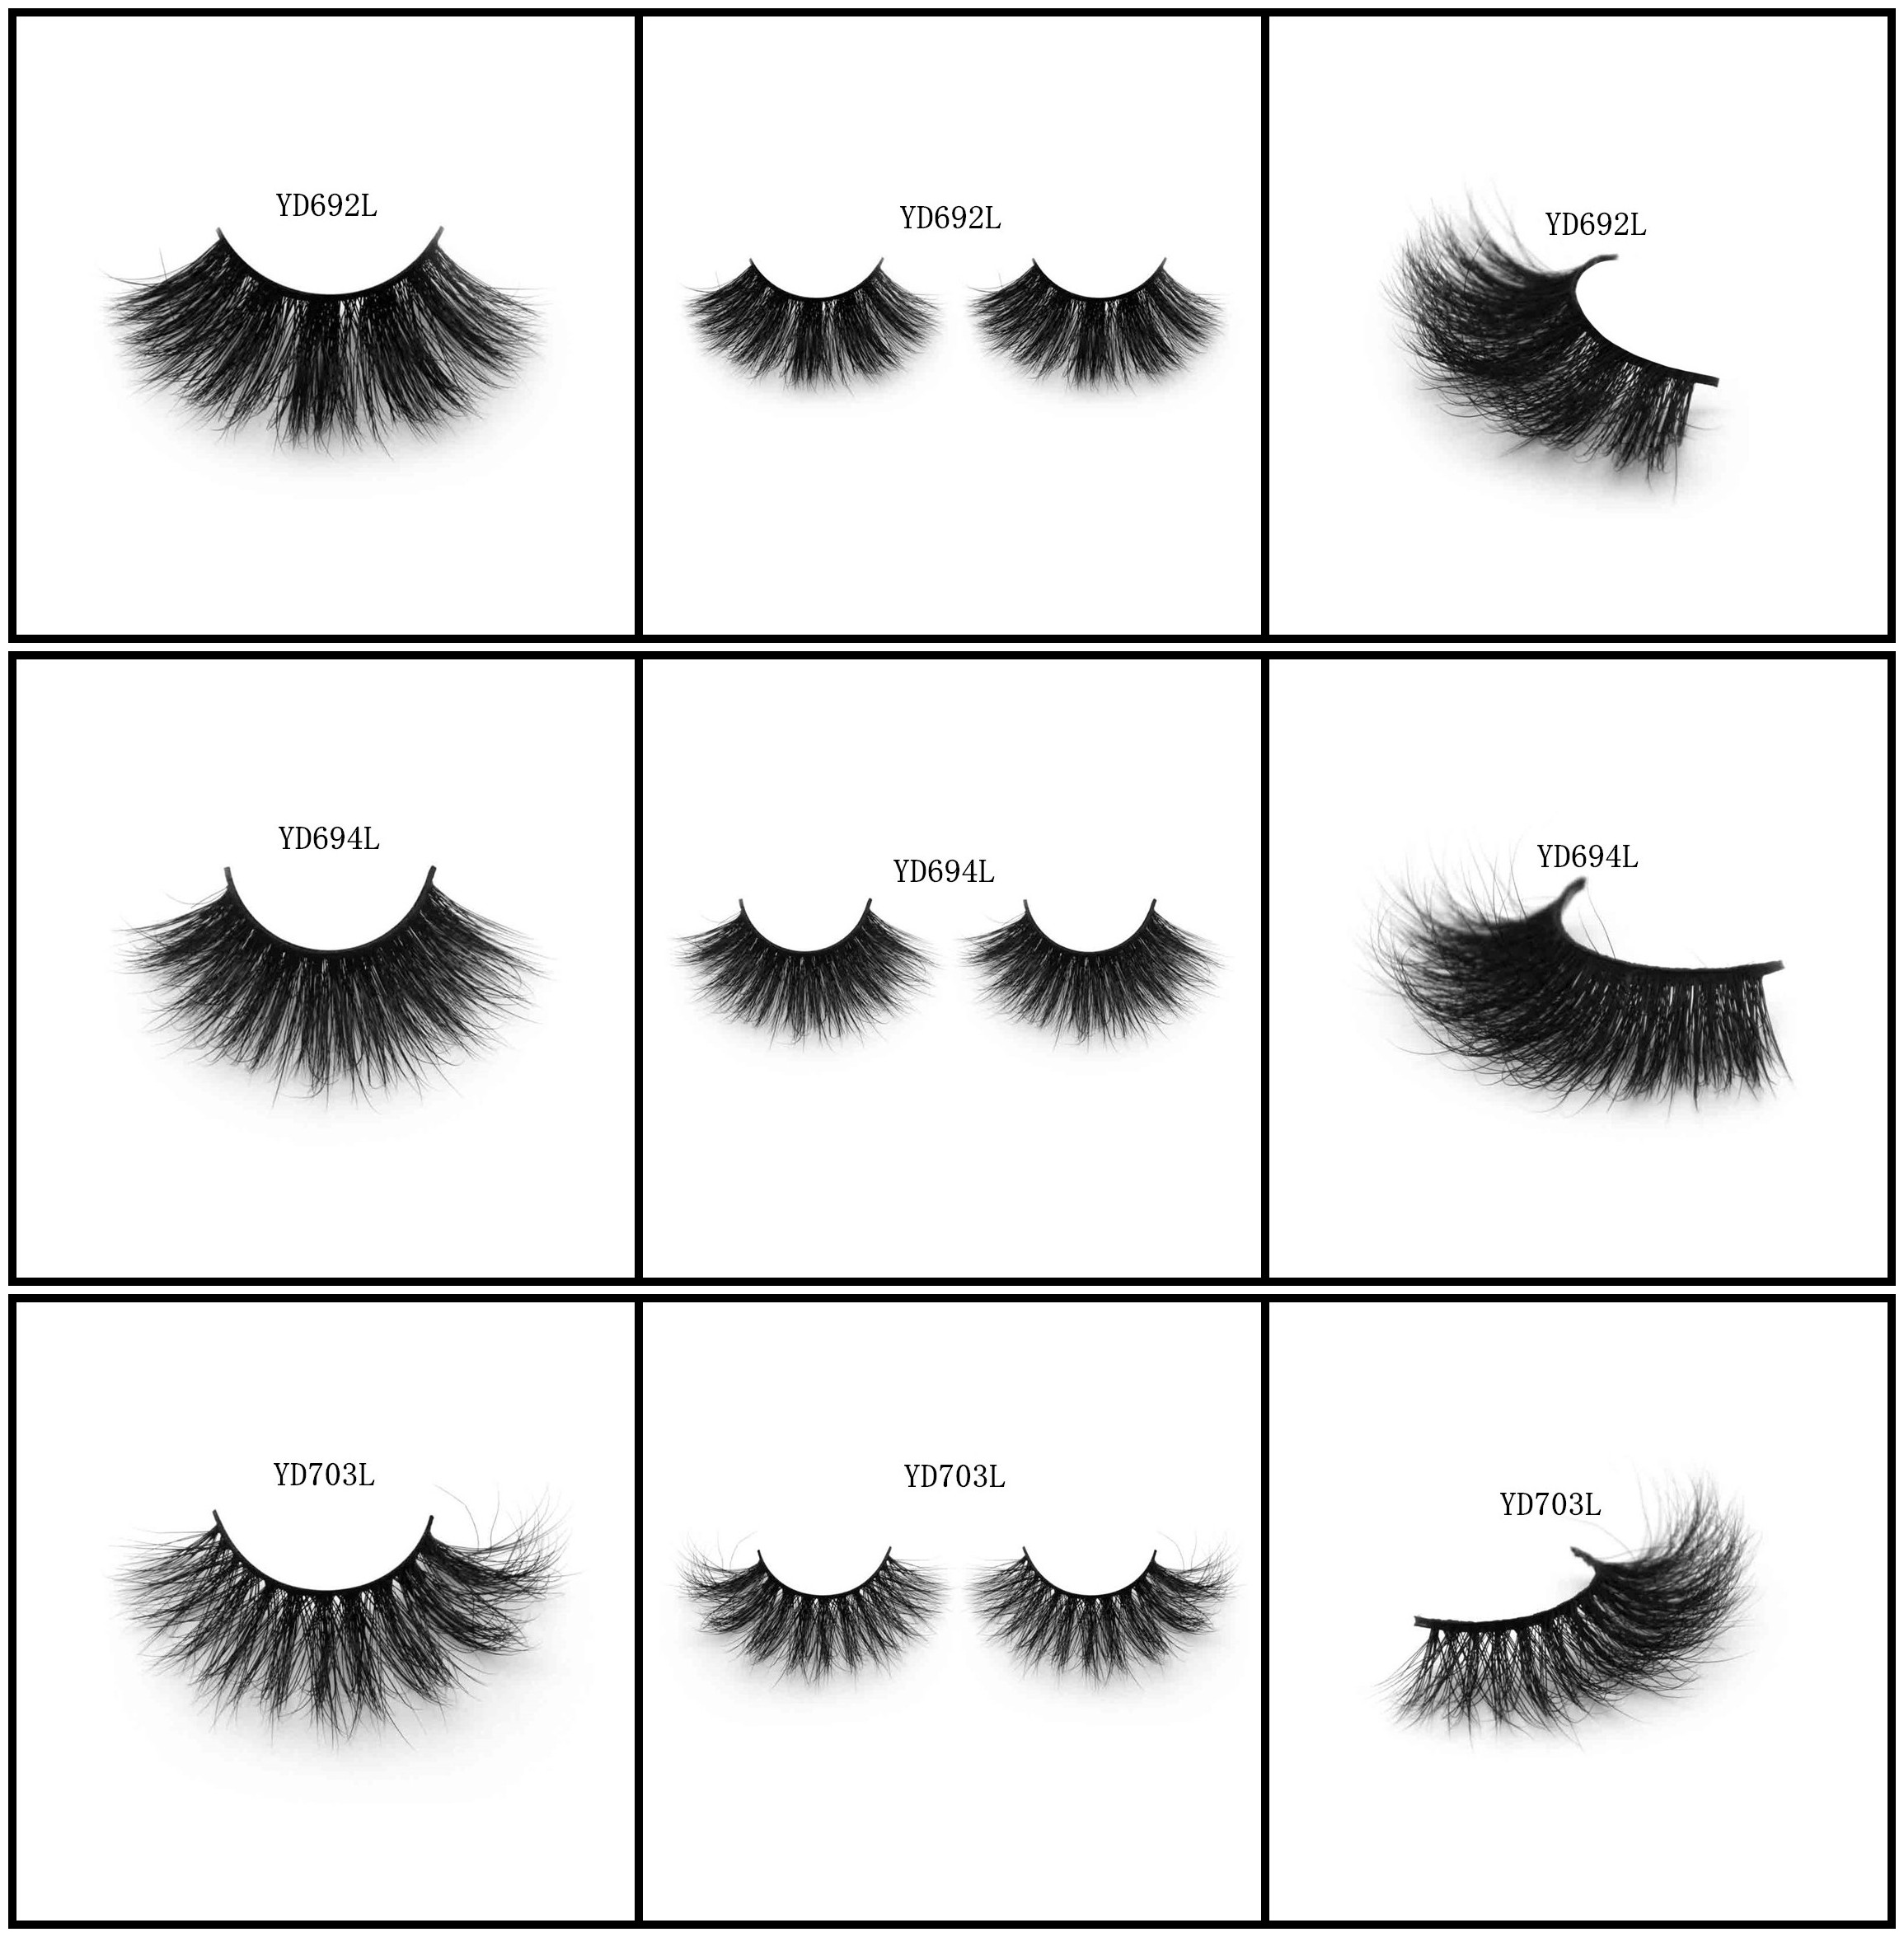 Long lashes for big eyes 3D mink hair lashes human hair lashes horse hair lashes wholesale from Aliexpress